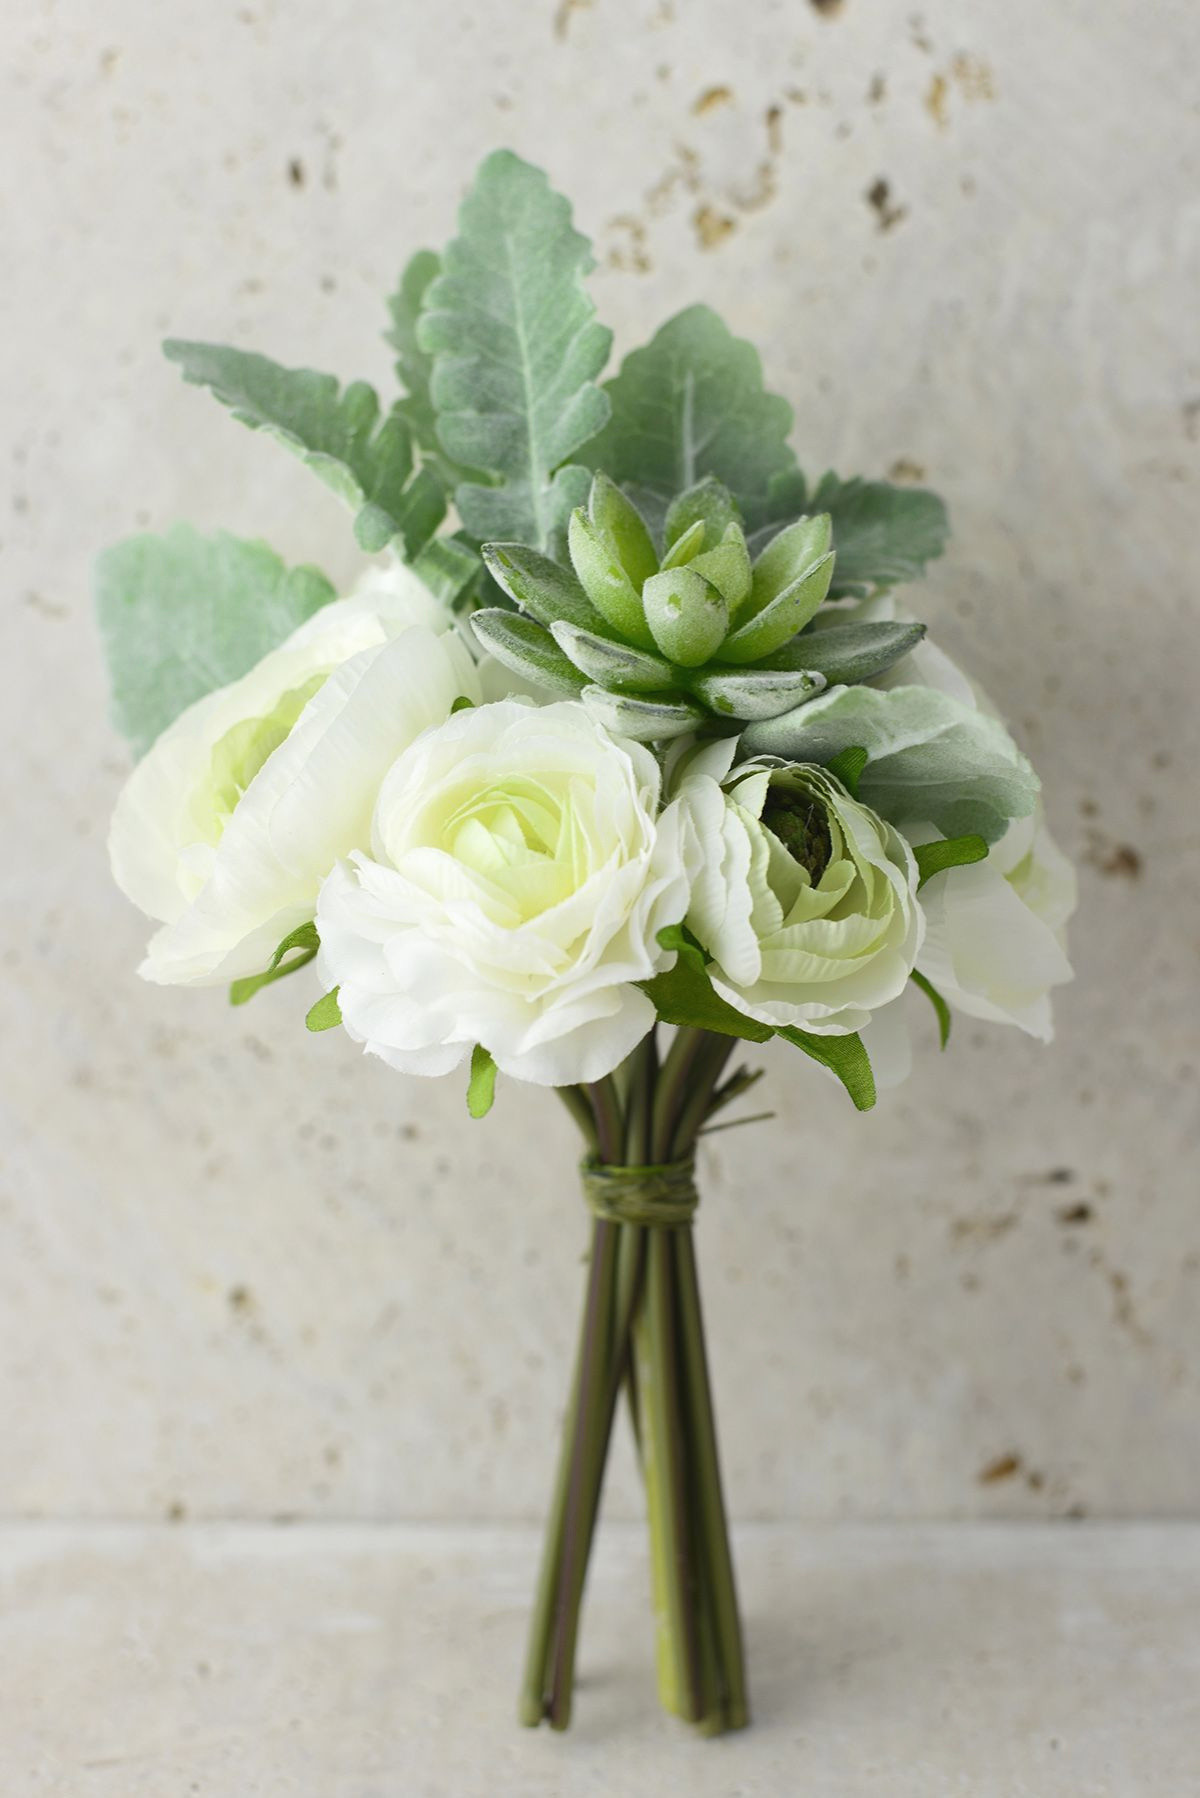 Floating Candle Vases Uk Of 8 Inspirational How to Make Floating Candle Centerpieces with with Awesome Green and White Flower Arrangements Graphics